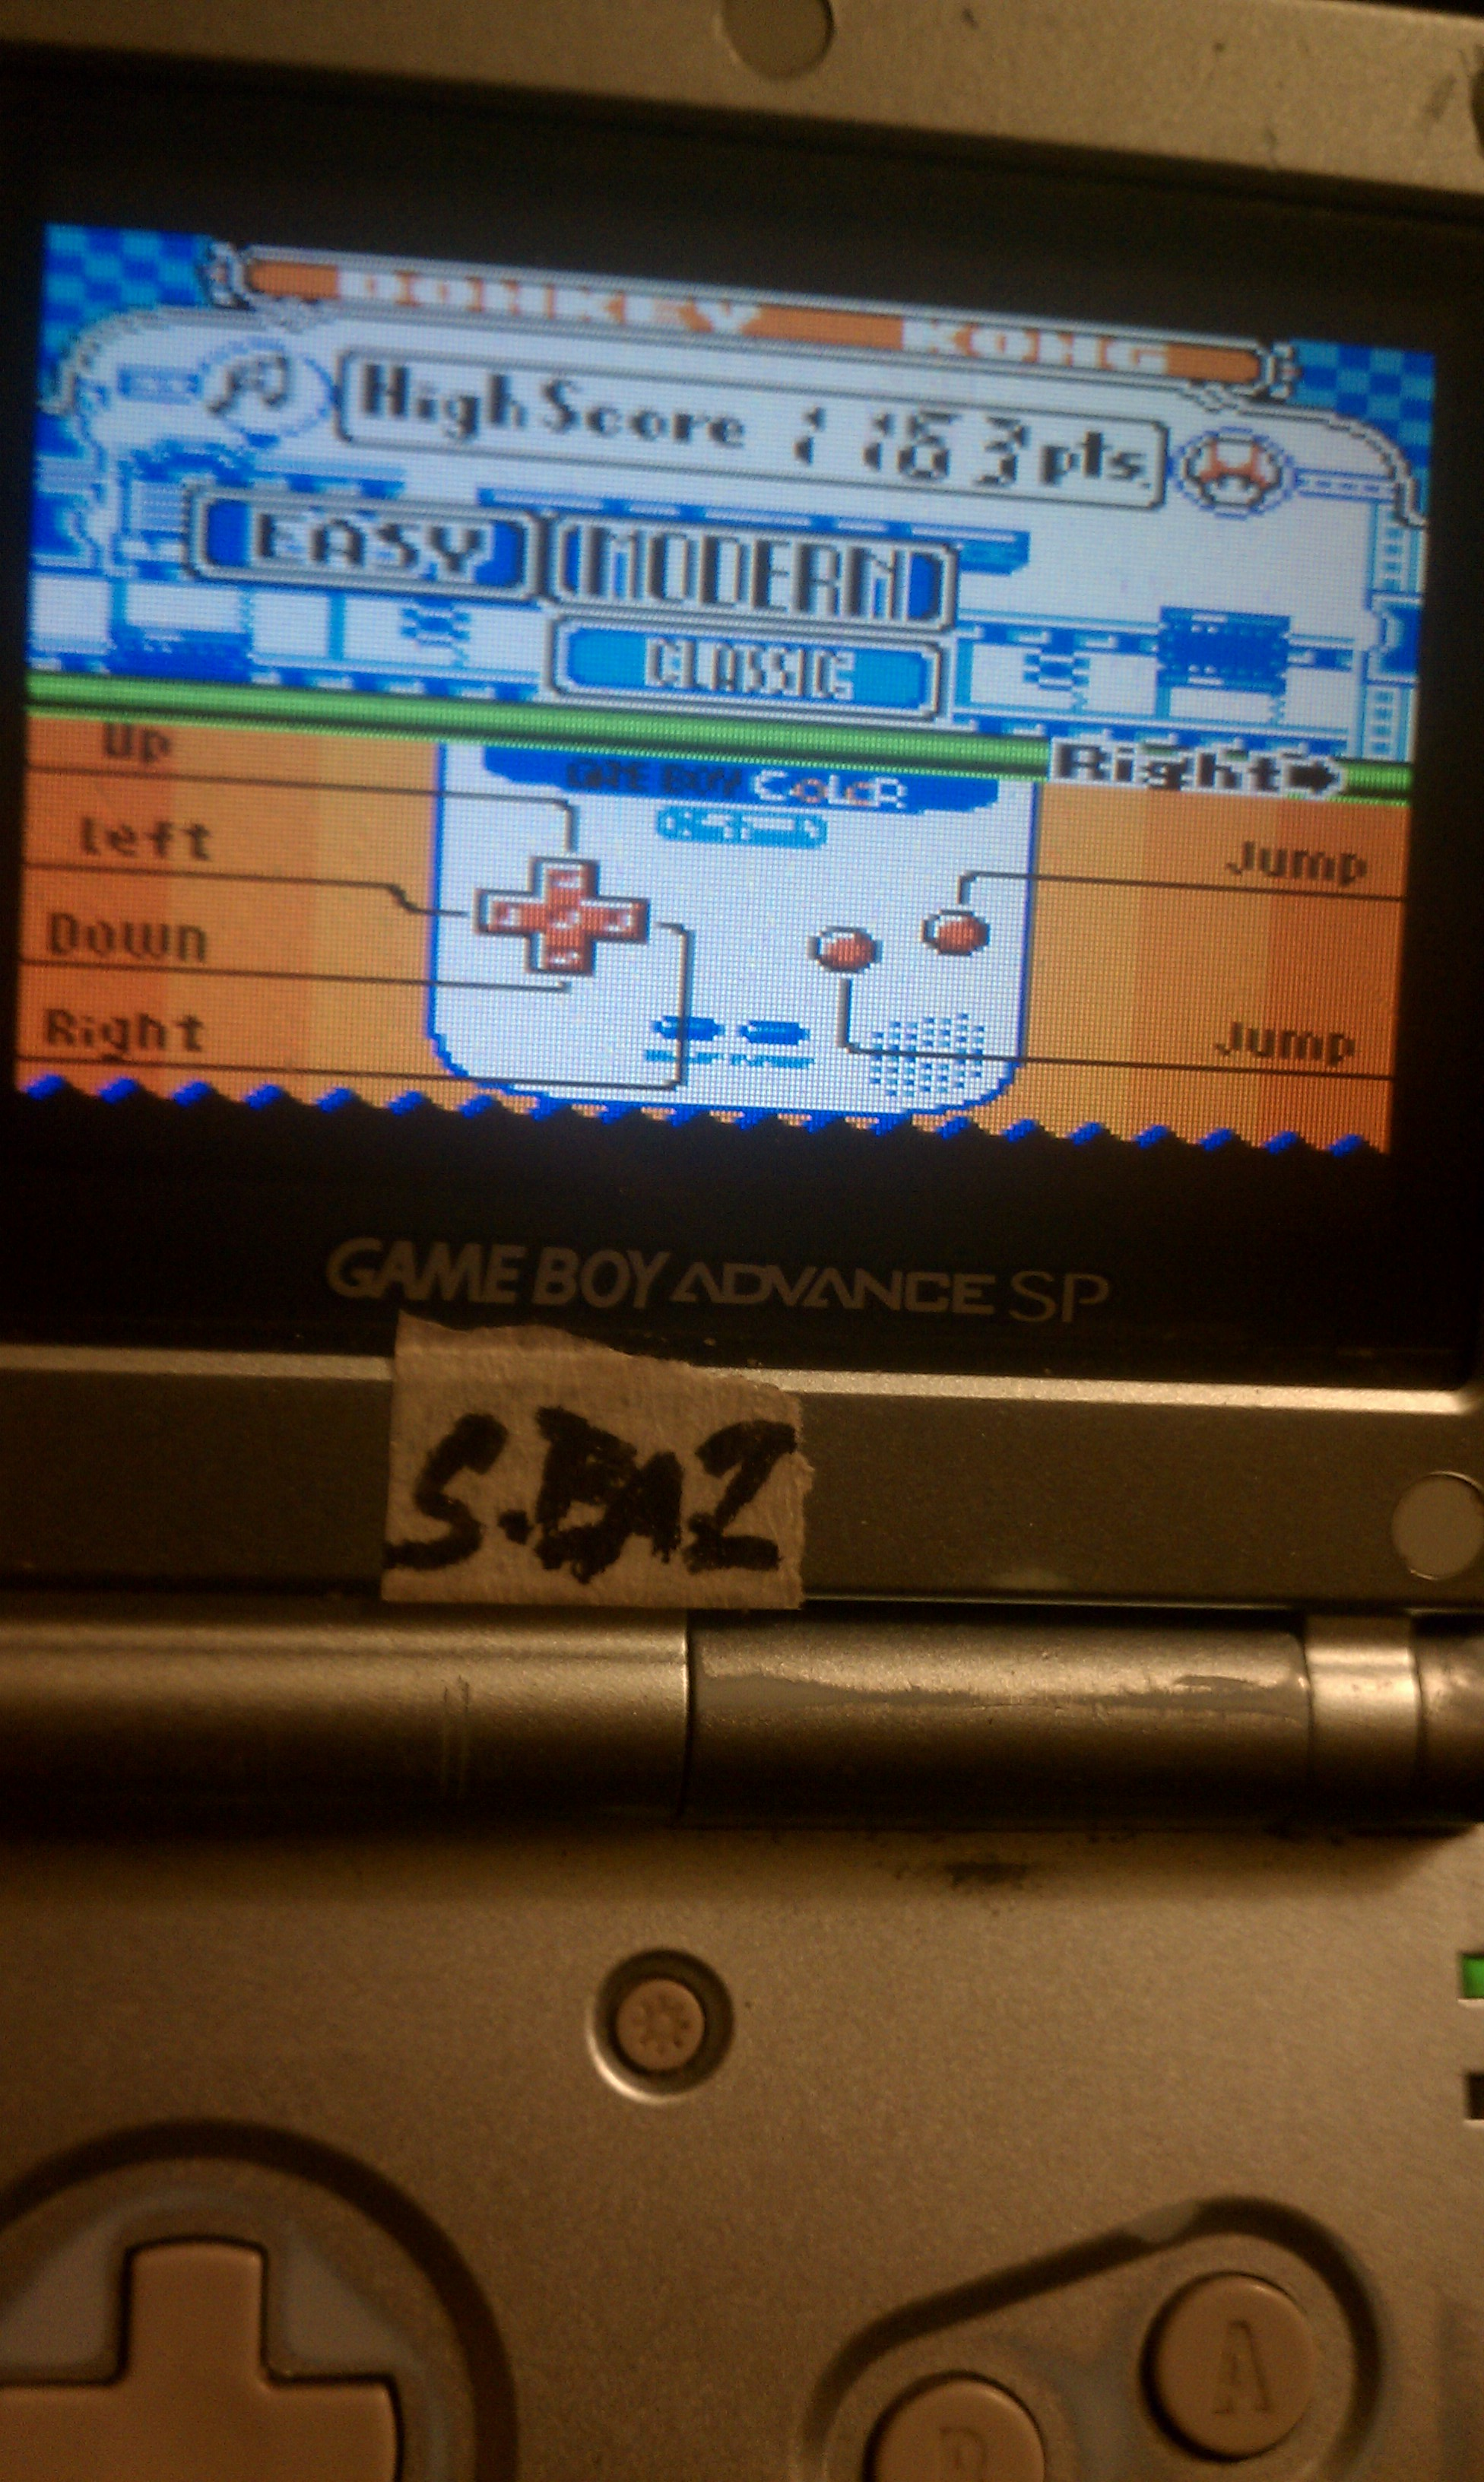 S.BAZ: Game & Watch Gallery 2: Donkey Kong: Modern: Easy (Game Boy Color) 1,163 points on 2016-06-25 15:22:22